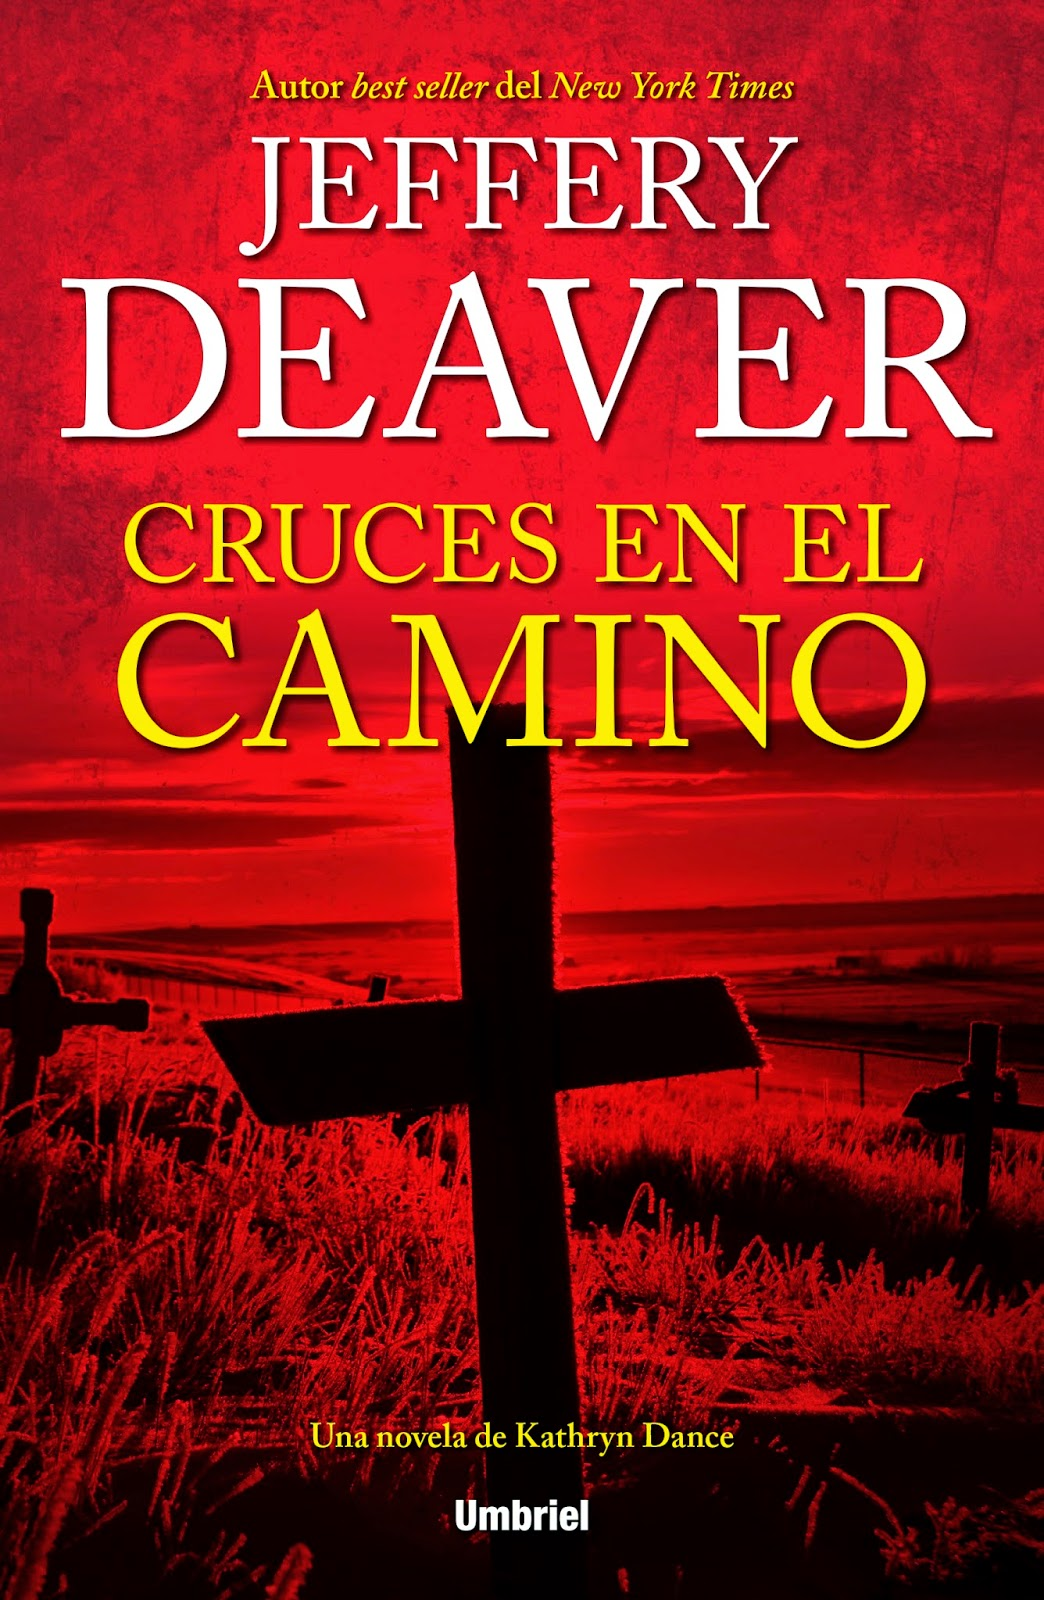 Cruces en el camino - Jeffery Deaver (2014)